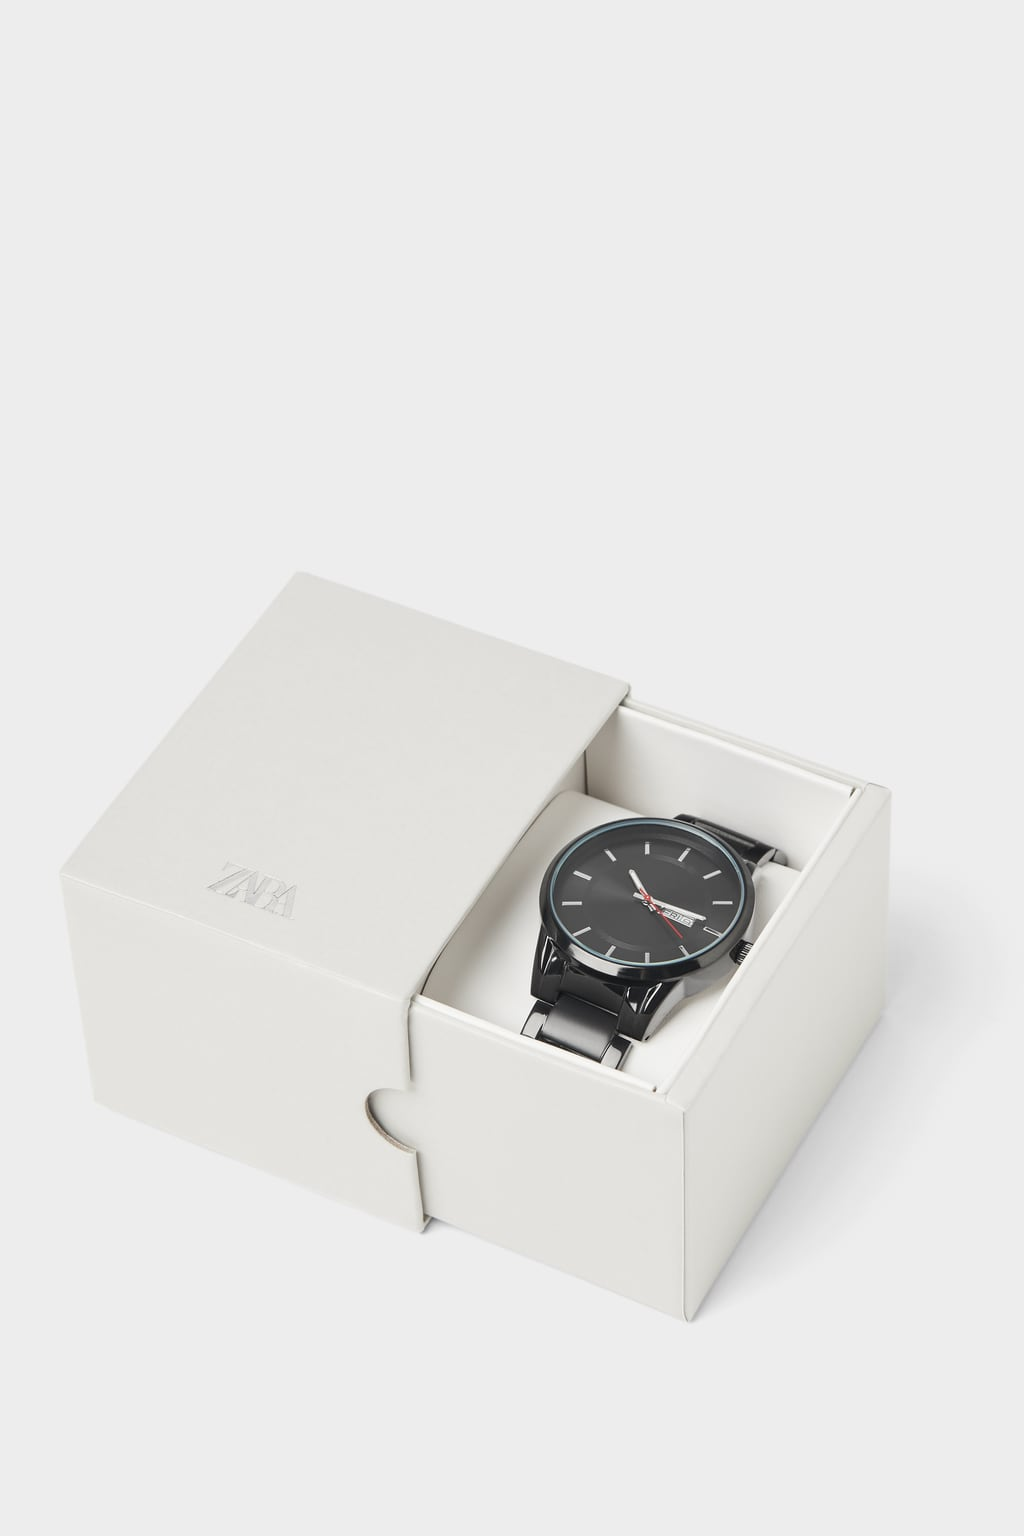 MINIMALIST WATCH WITH ROUND CASE AND METAL STRAP